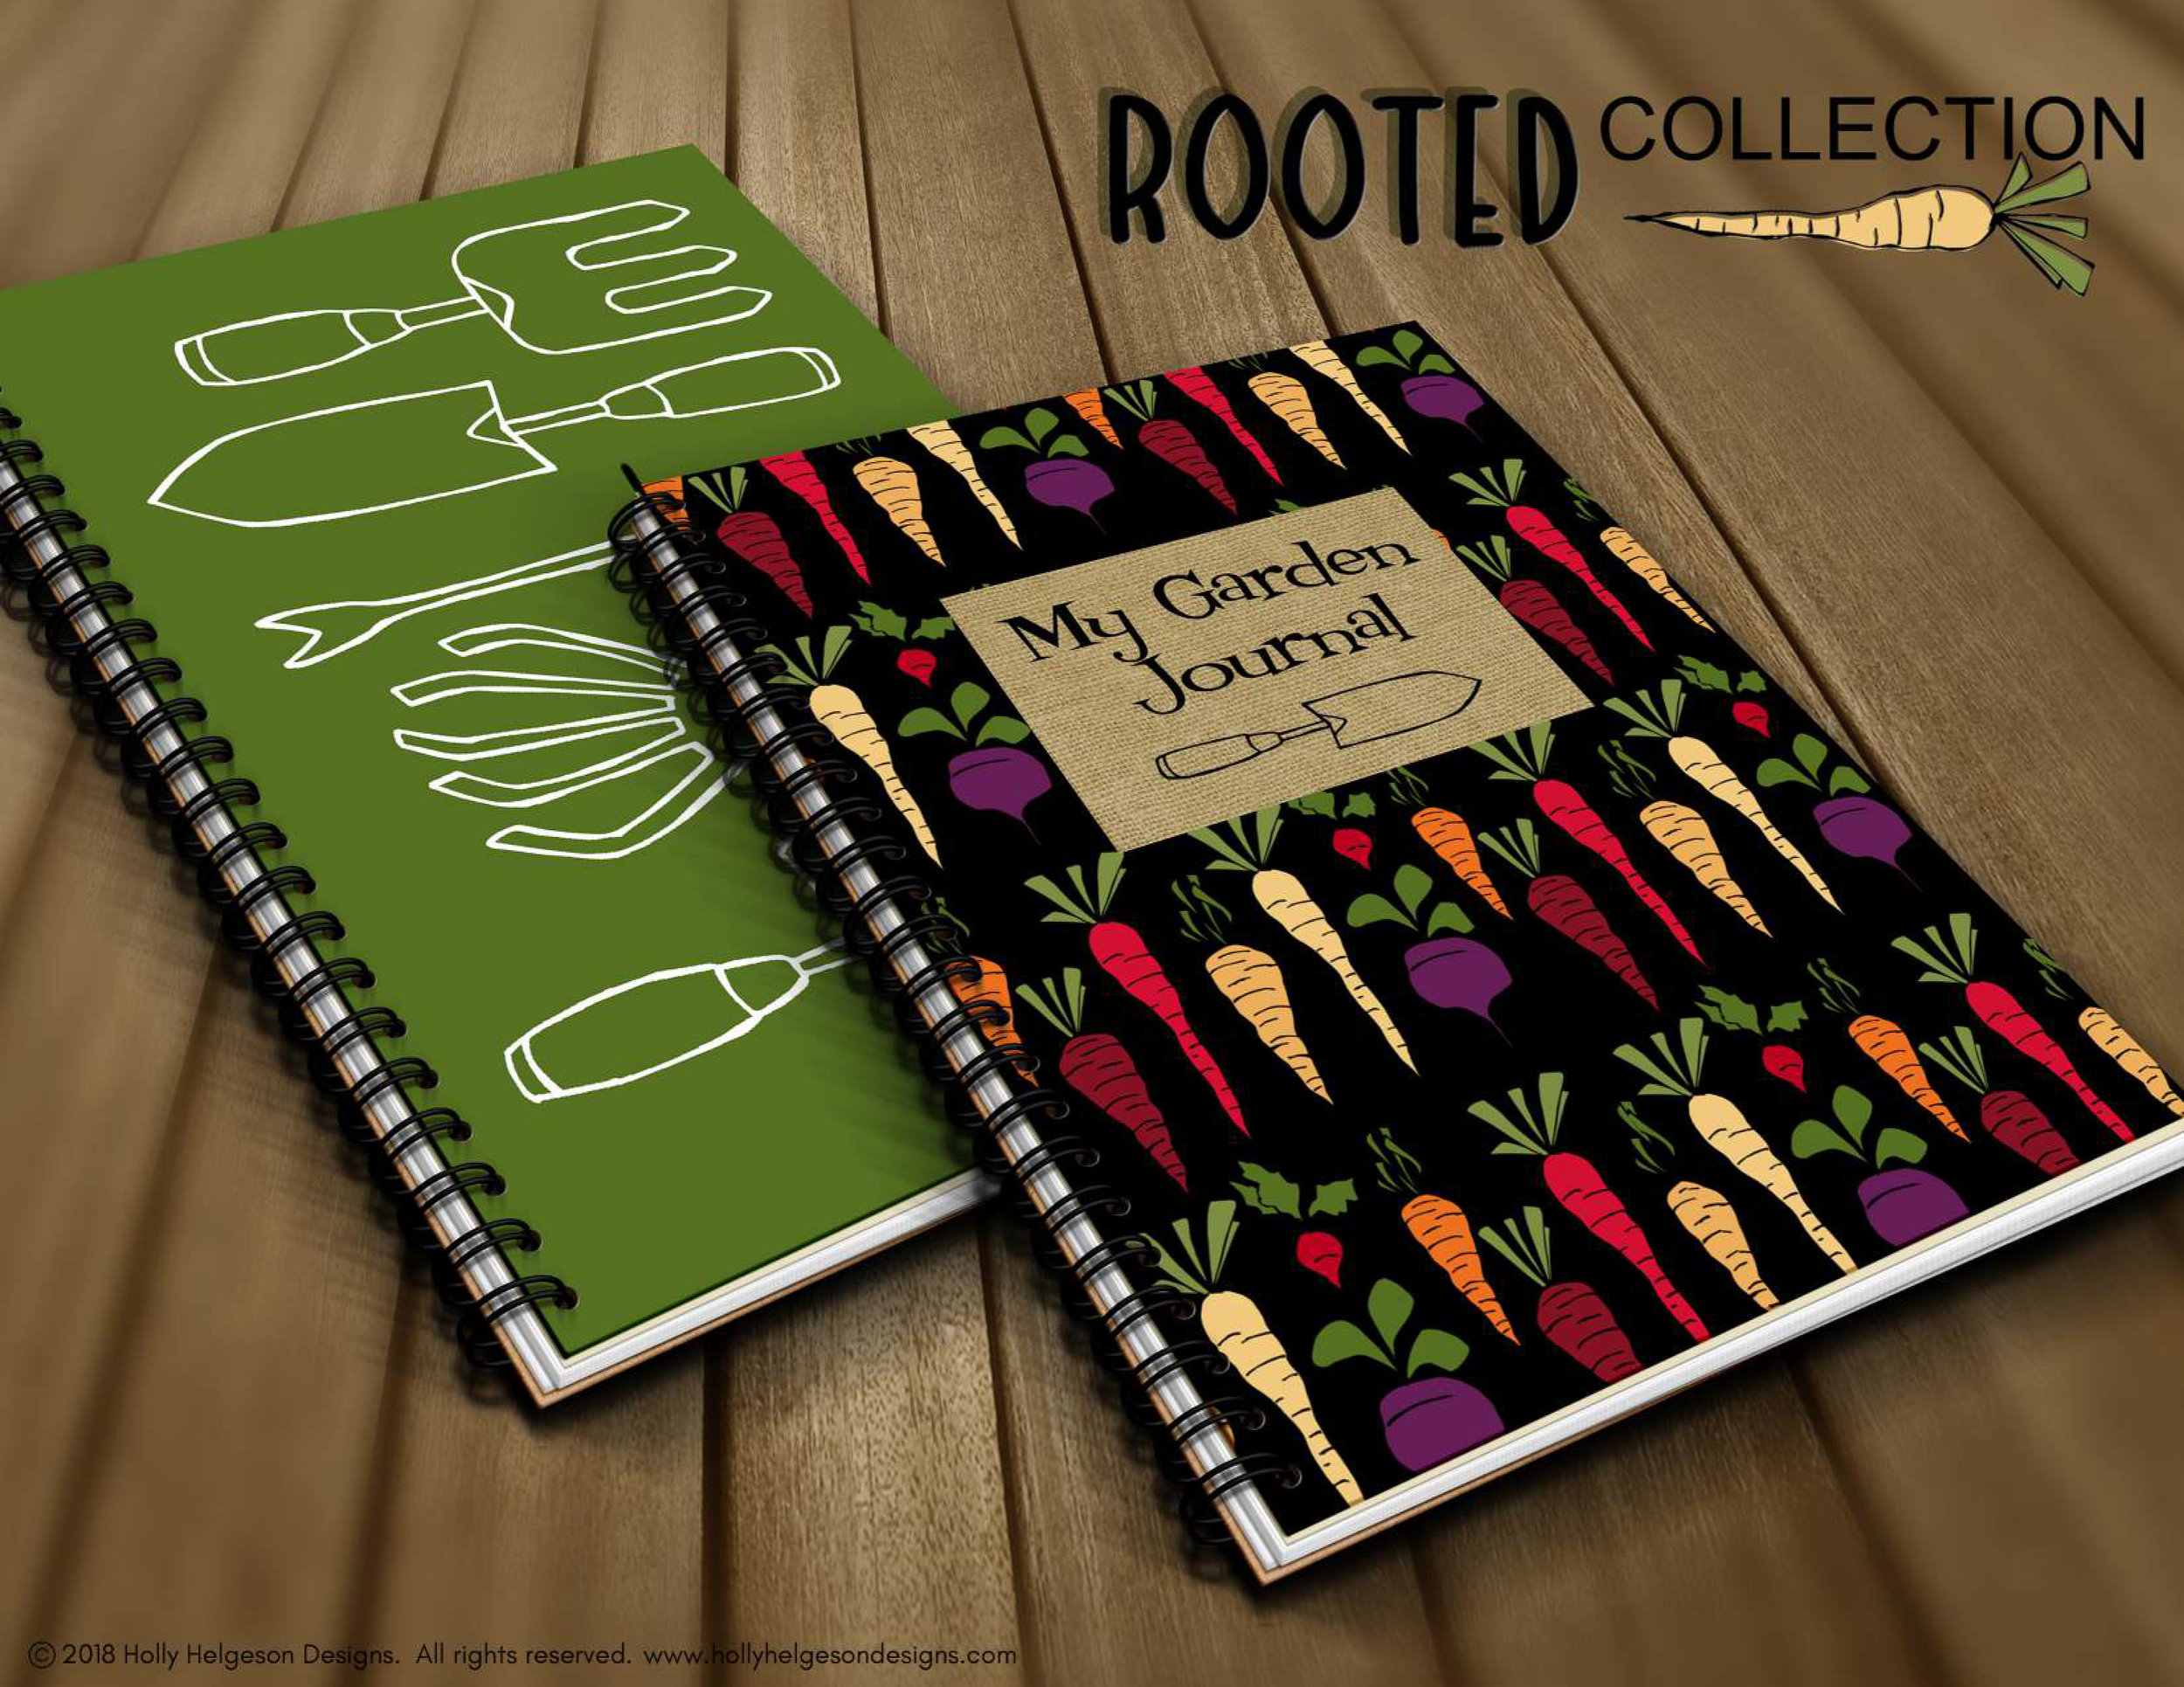 2018 Rooted Collection by Holly Helgeson-13.jpg